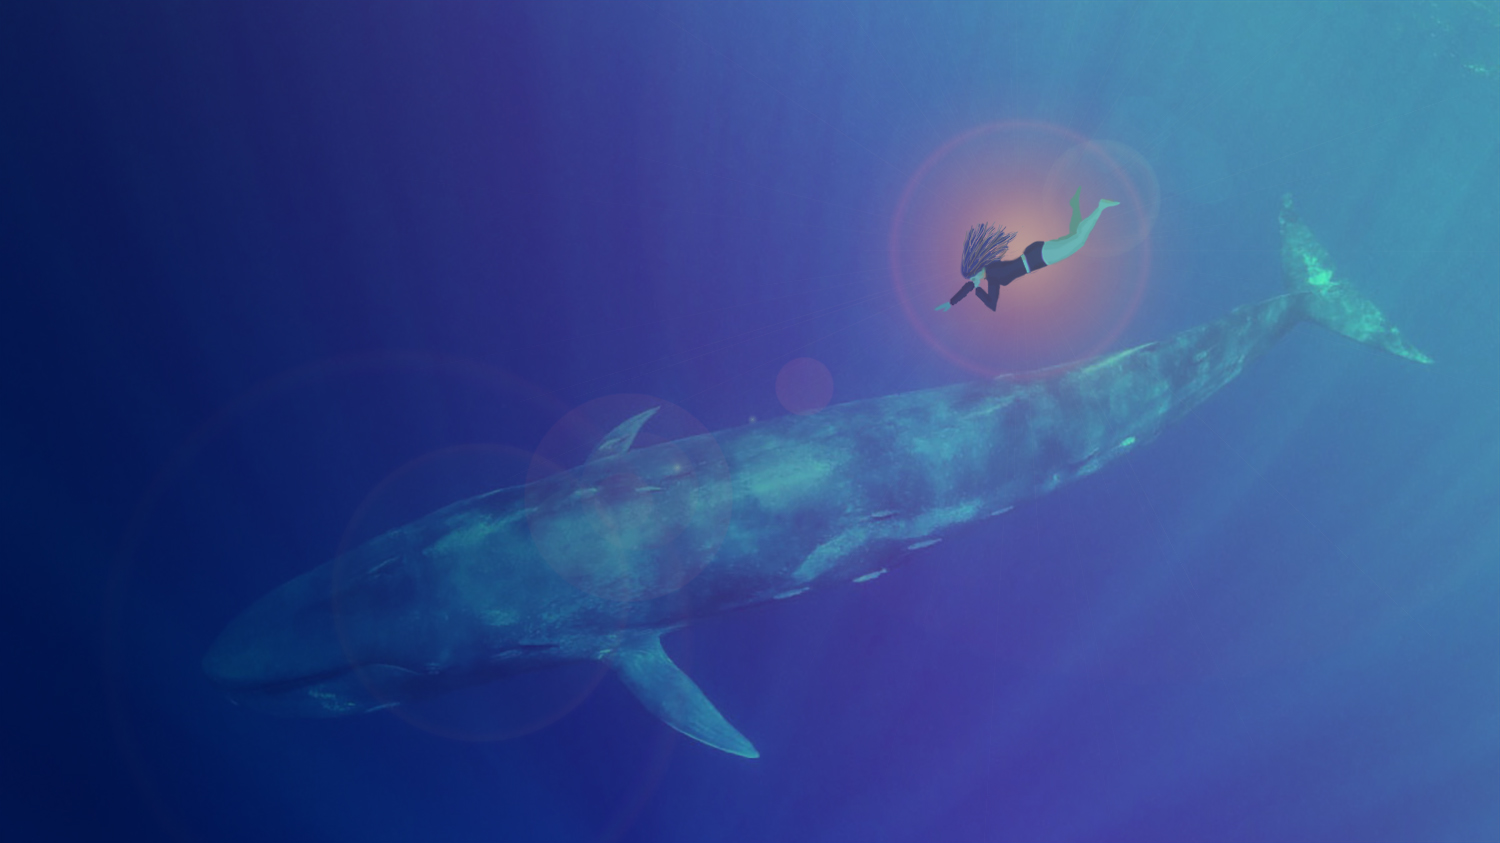 Why does the whale dream